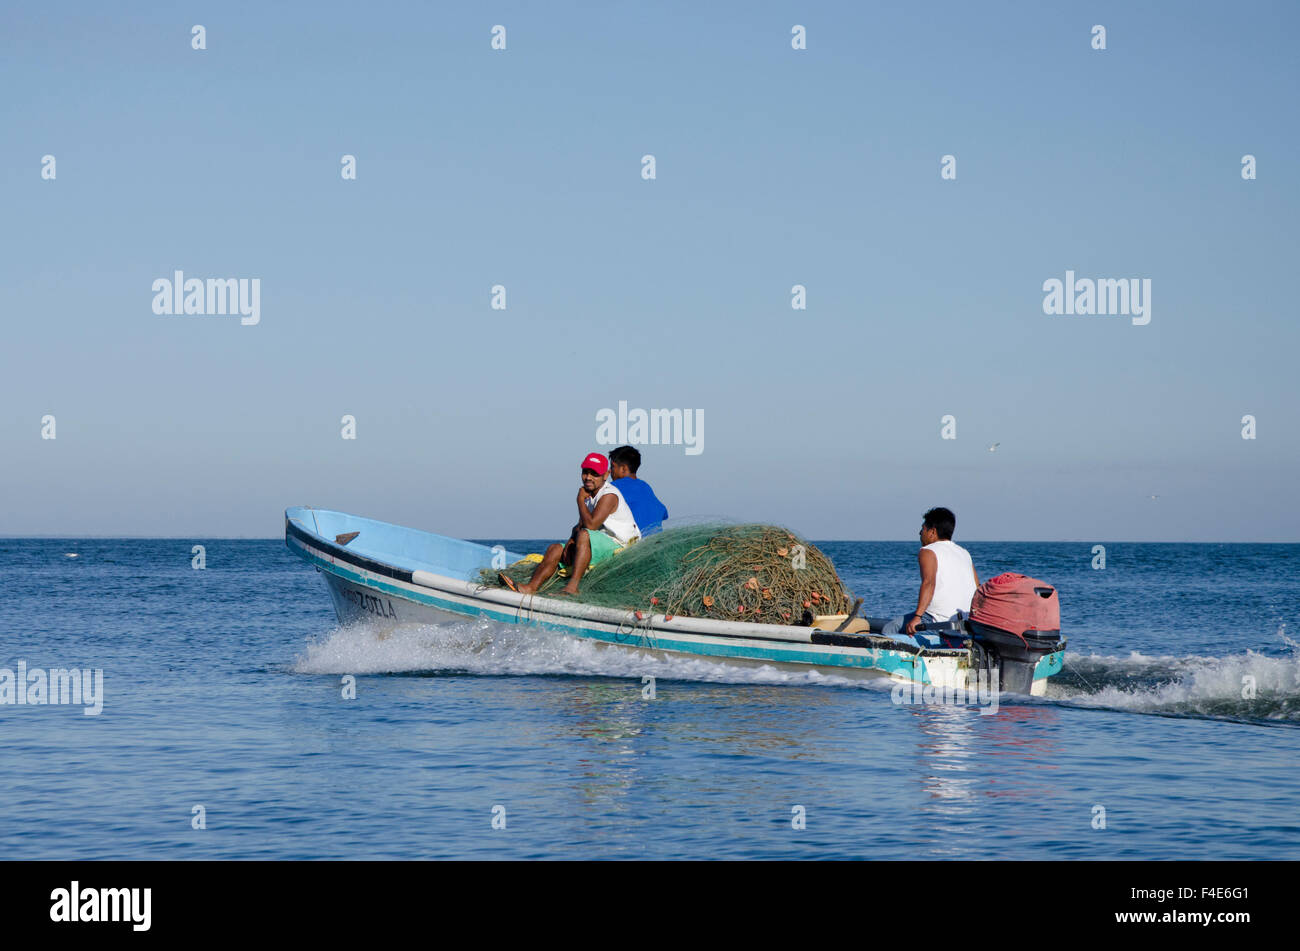 Guatemala, Izabal, Livingston. Port town located at the mouth of the Rio Dulce at the Gulf of Honduras. Fishermen Stock Photo